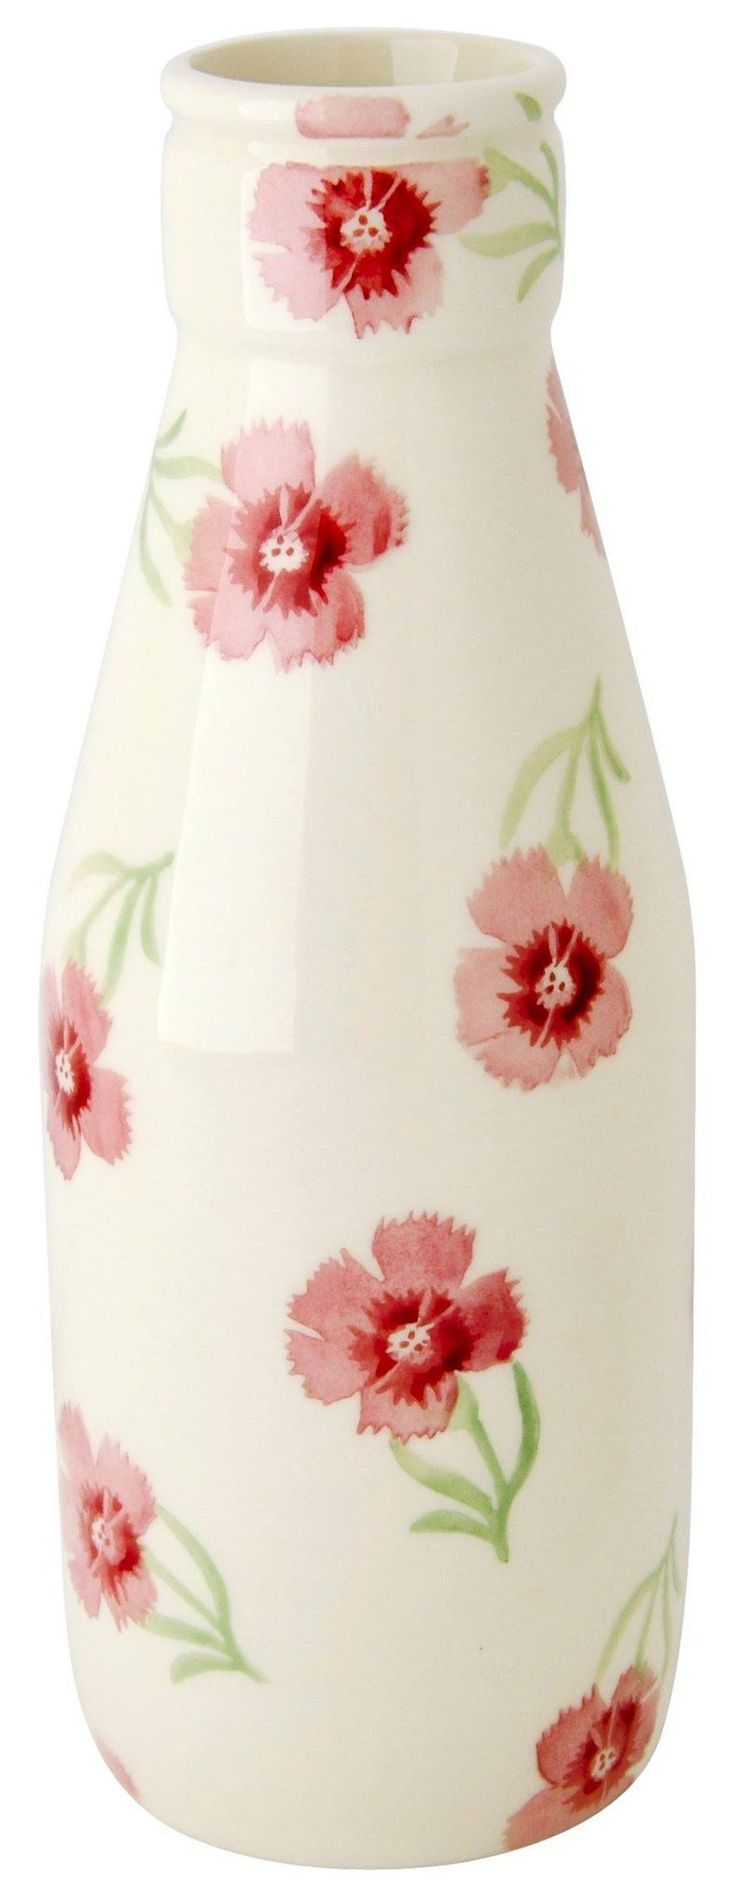 Emma Bridgewater Carnations Large Milk Bottle Sale Day Competition Giveaway 2014 - Only two winners